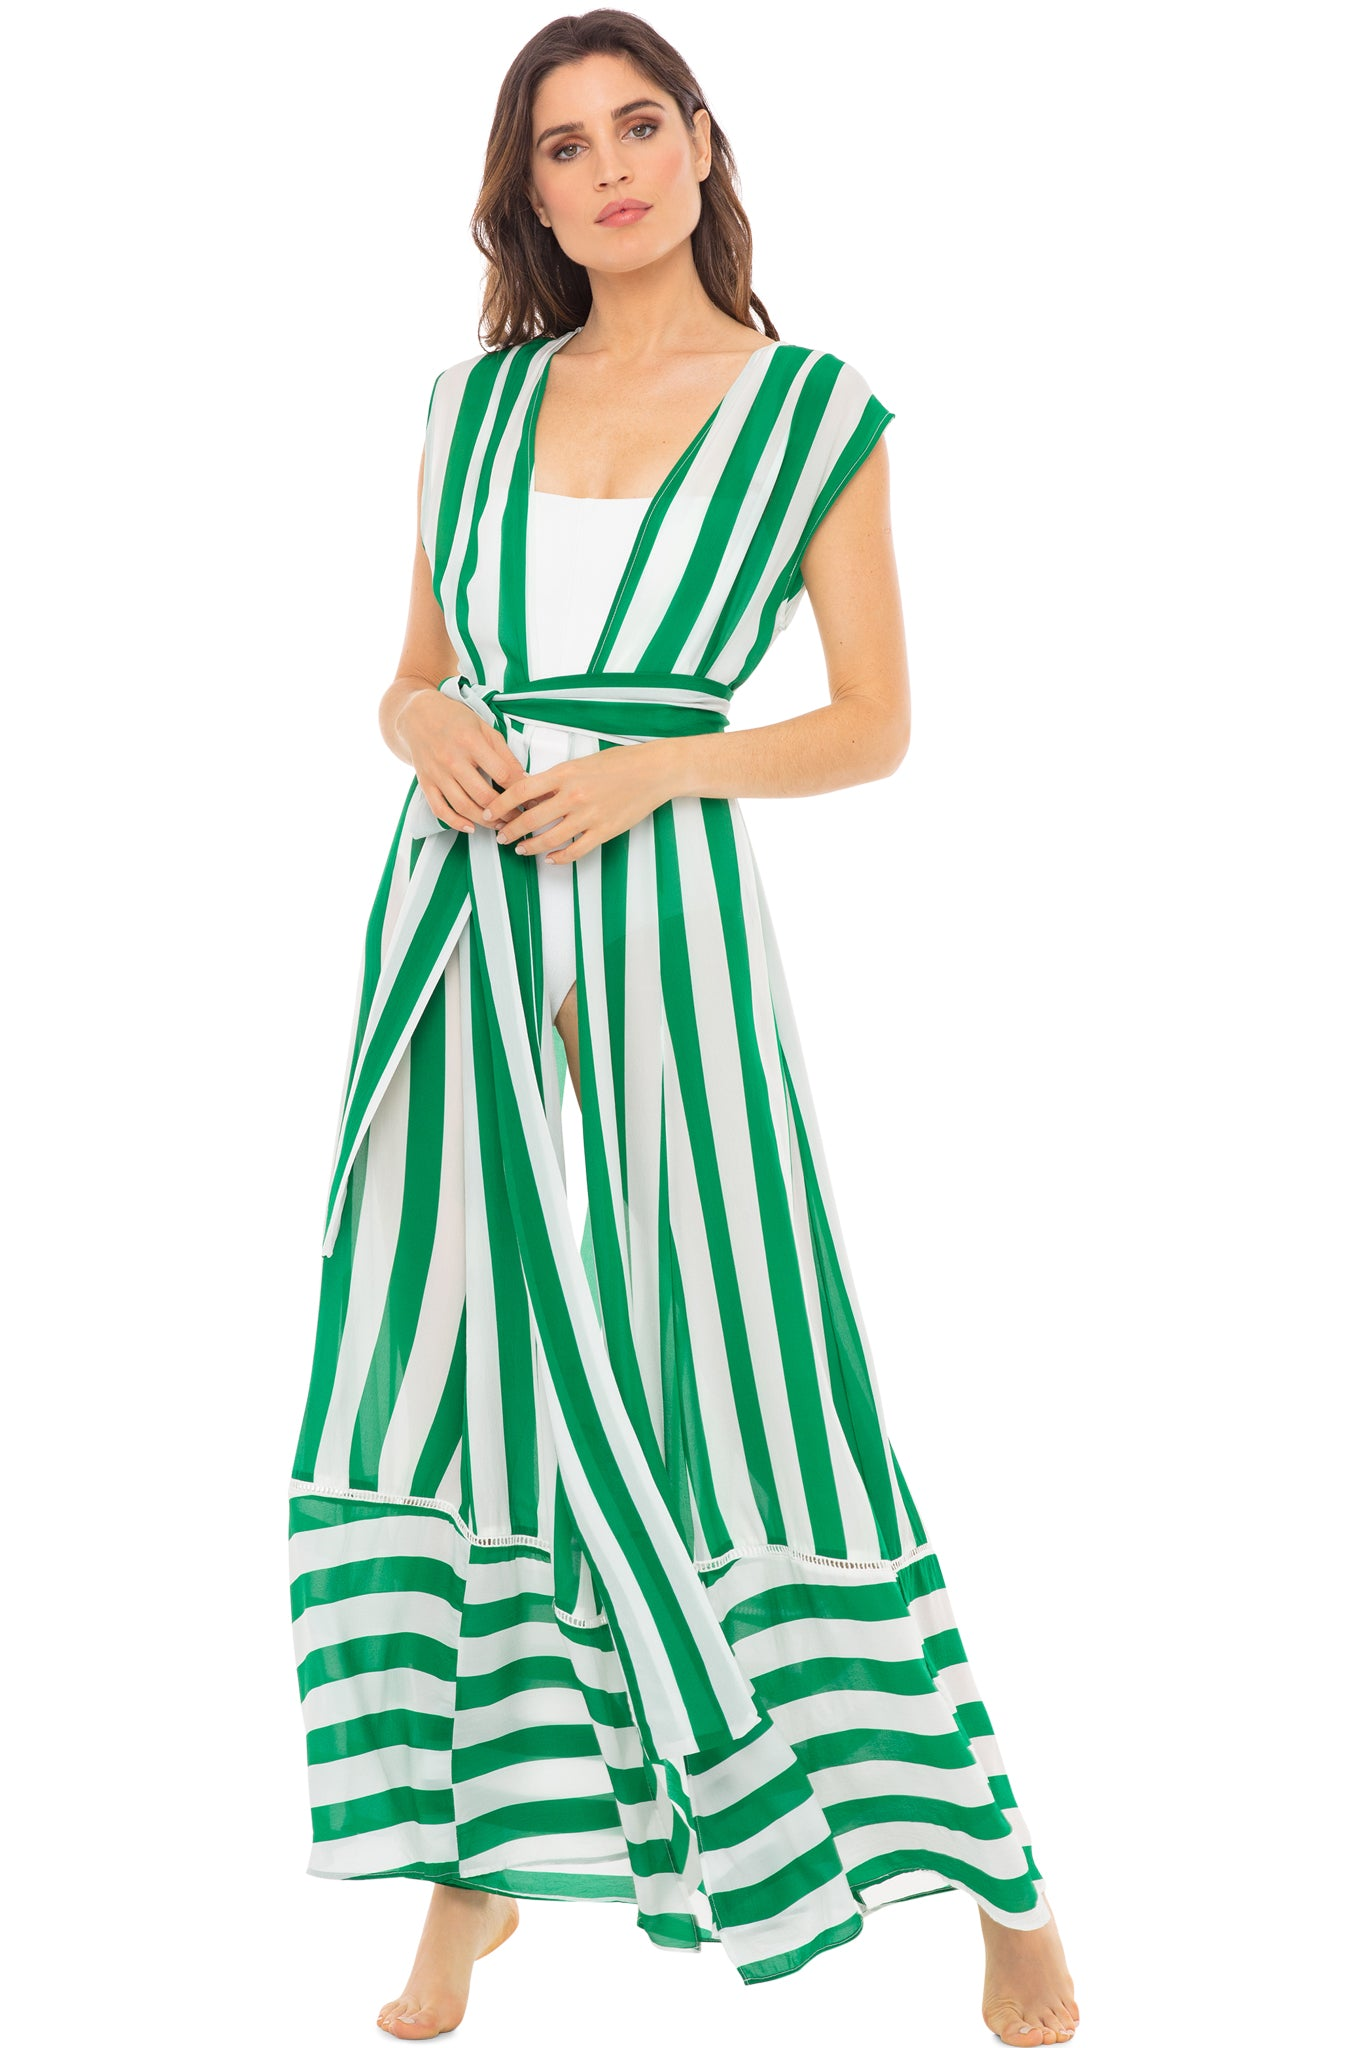 Audrey sleeveless maxi cover-up in green and white stripes - front